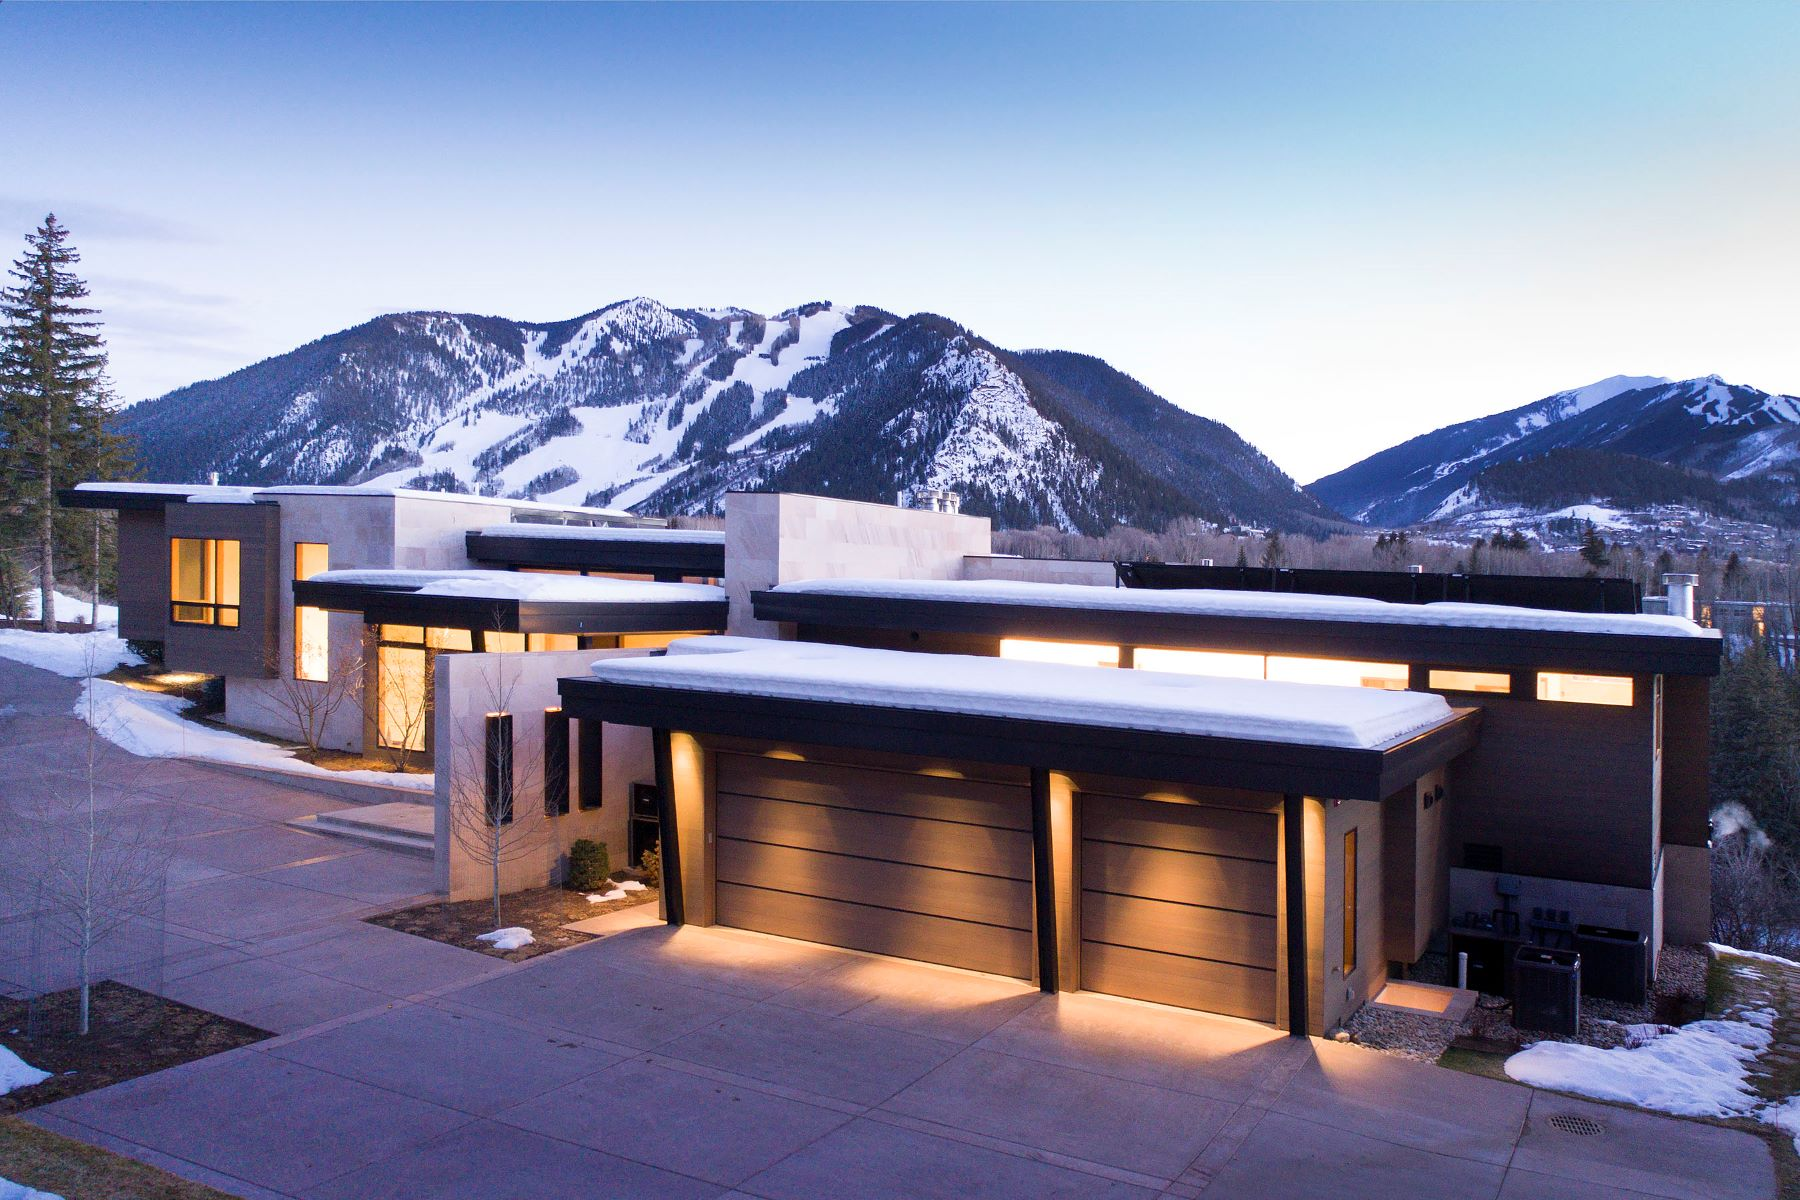 Single Family Home for Sale at New Willoughby Way Contemporary 720 Willoughby Way Red Mountain, Aspen, Colorado, 81611 United States